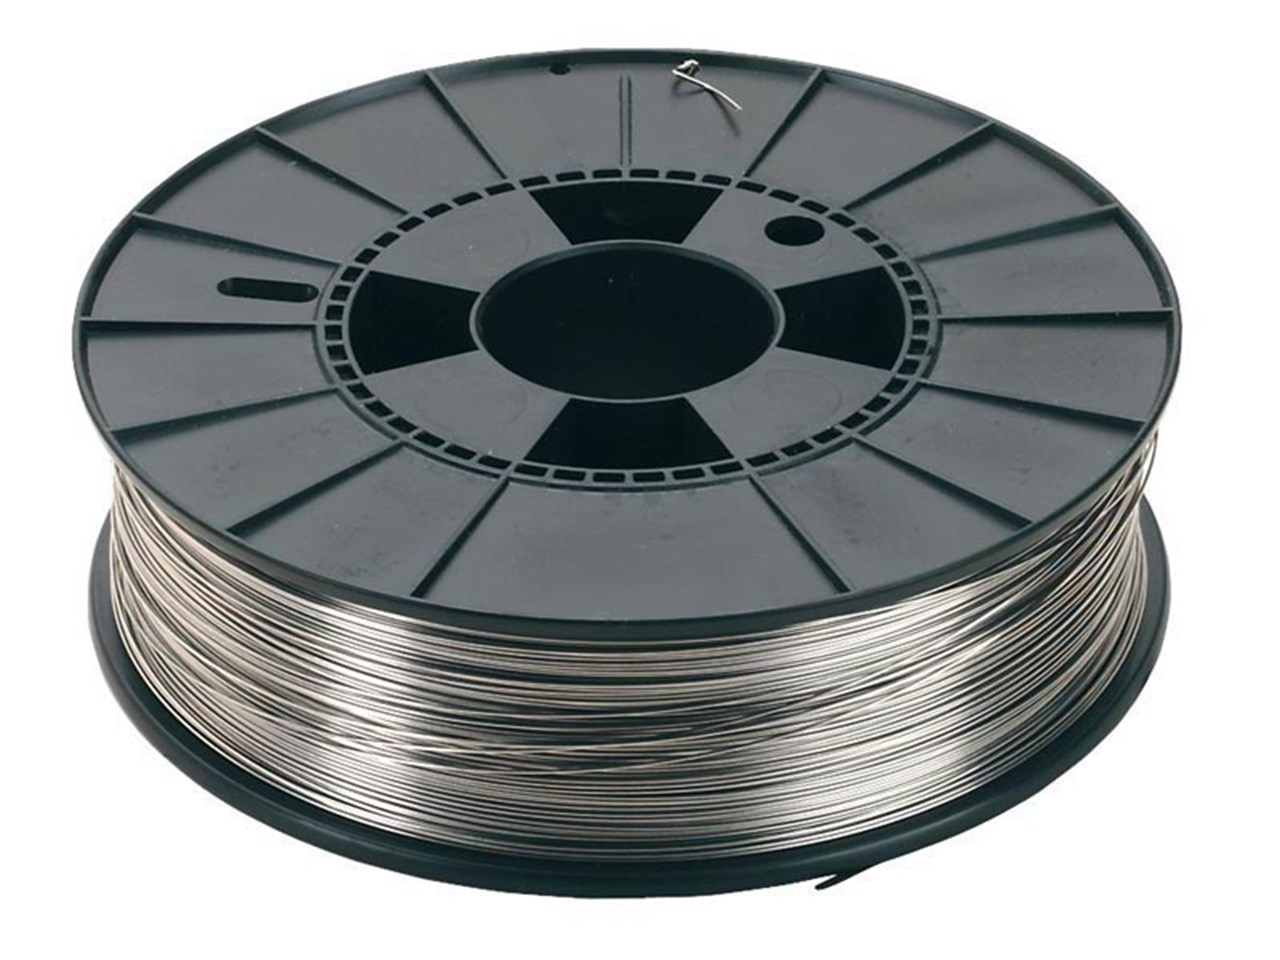 Sealey MIG/5K/SS08 Stainless Steel MIG Wire 5.0kg 0.8mm 308(S)93 Grade